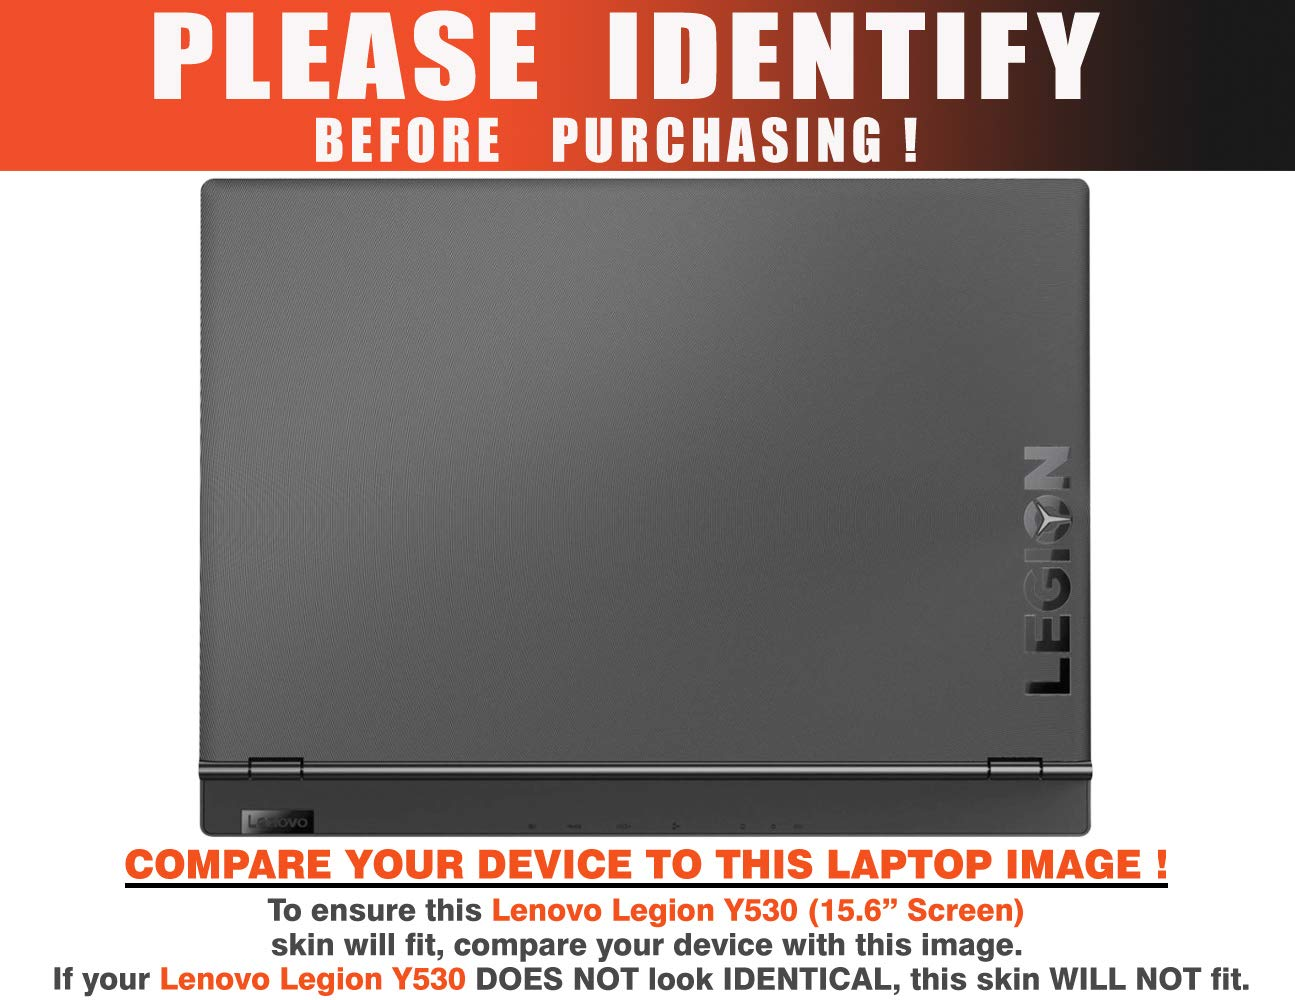 decalrus - Protective Decal Wood Burl Skin Sticker for Lenovo Legion Y530 (15.6'' Screen) case Cover wrap LElegionY530-153 by decalrus (Image #2)